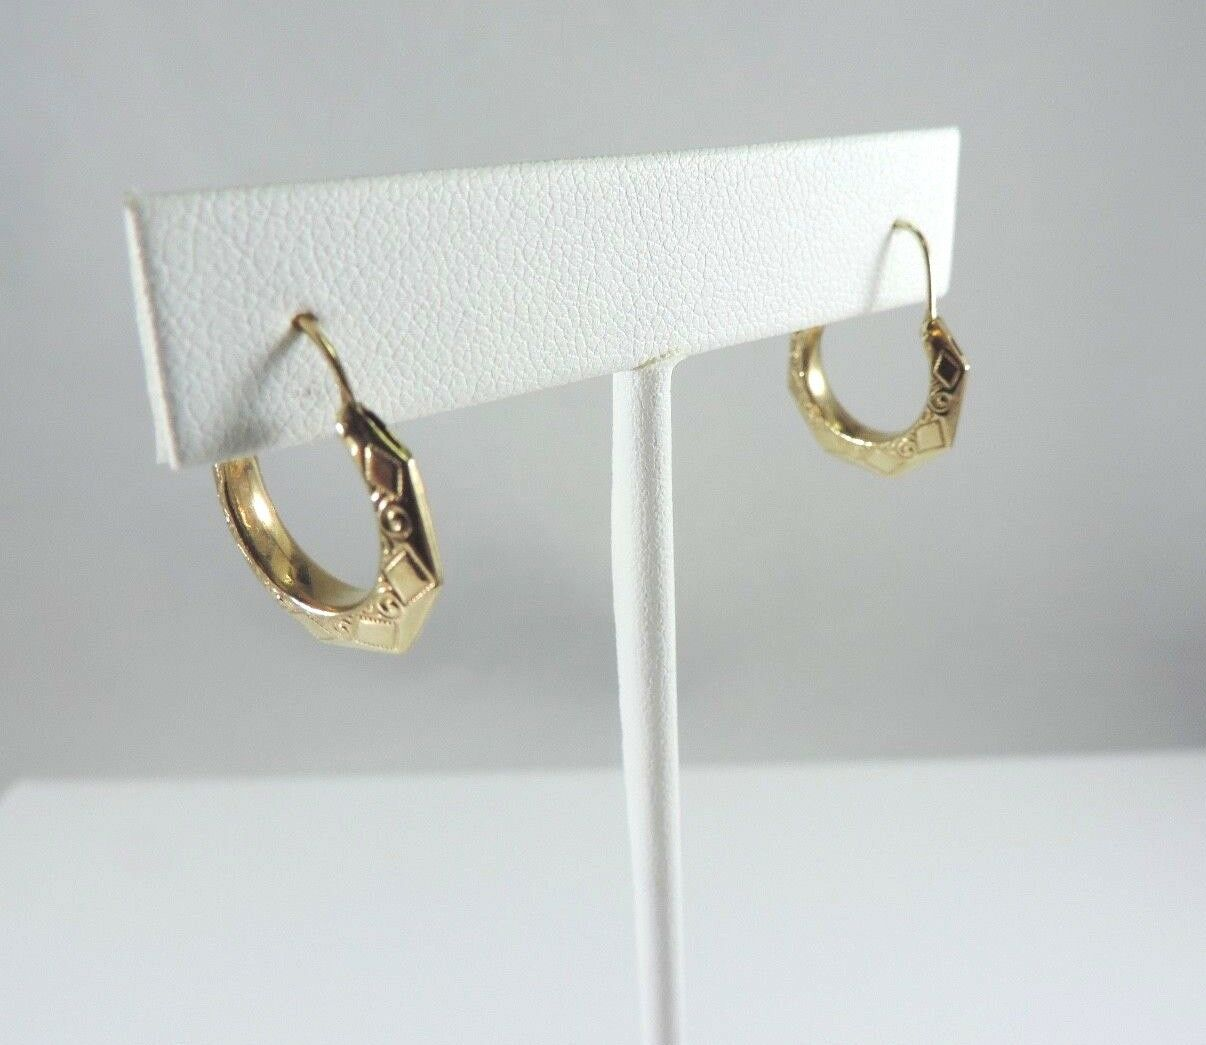 .585 14K YELLOW gold ETCHED DESIGN HOOP EARRINGS